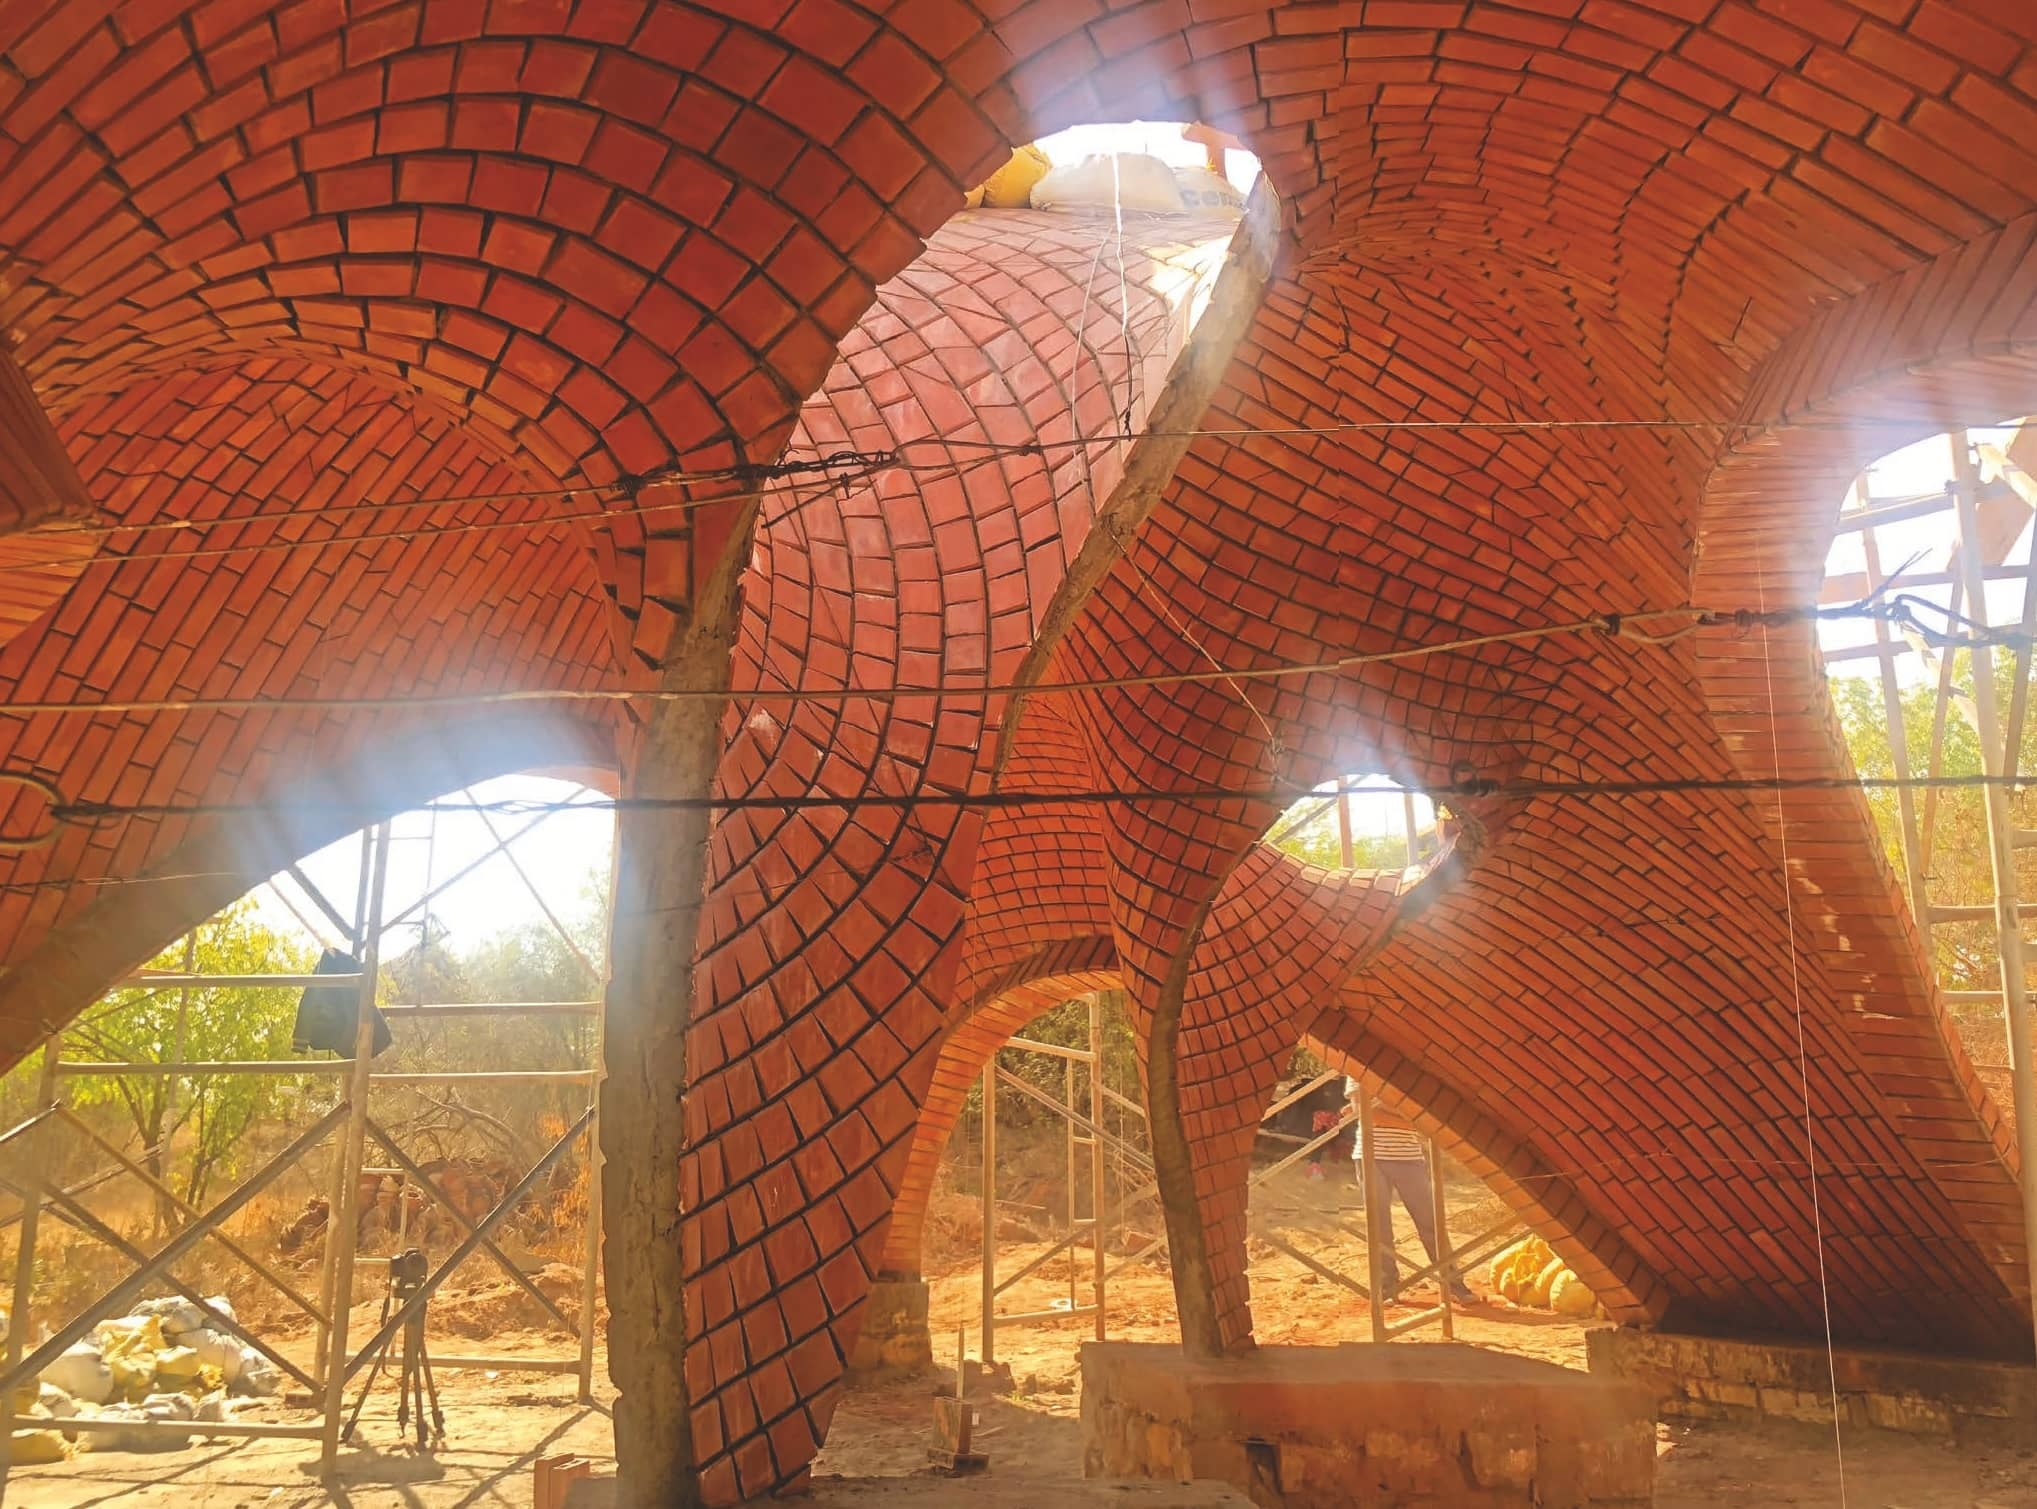 Bridging The Gap: Computation For Construction In India